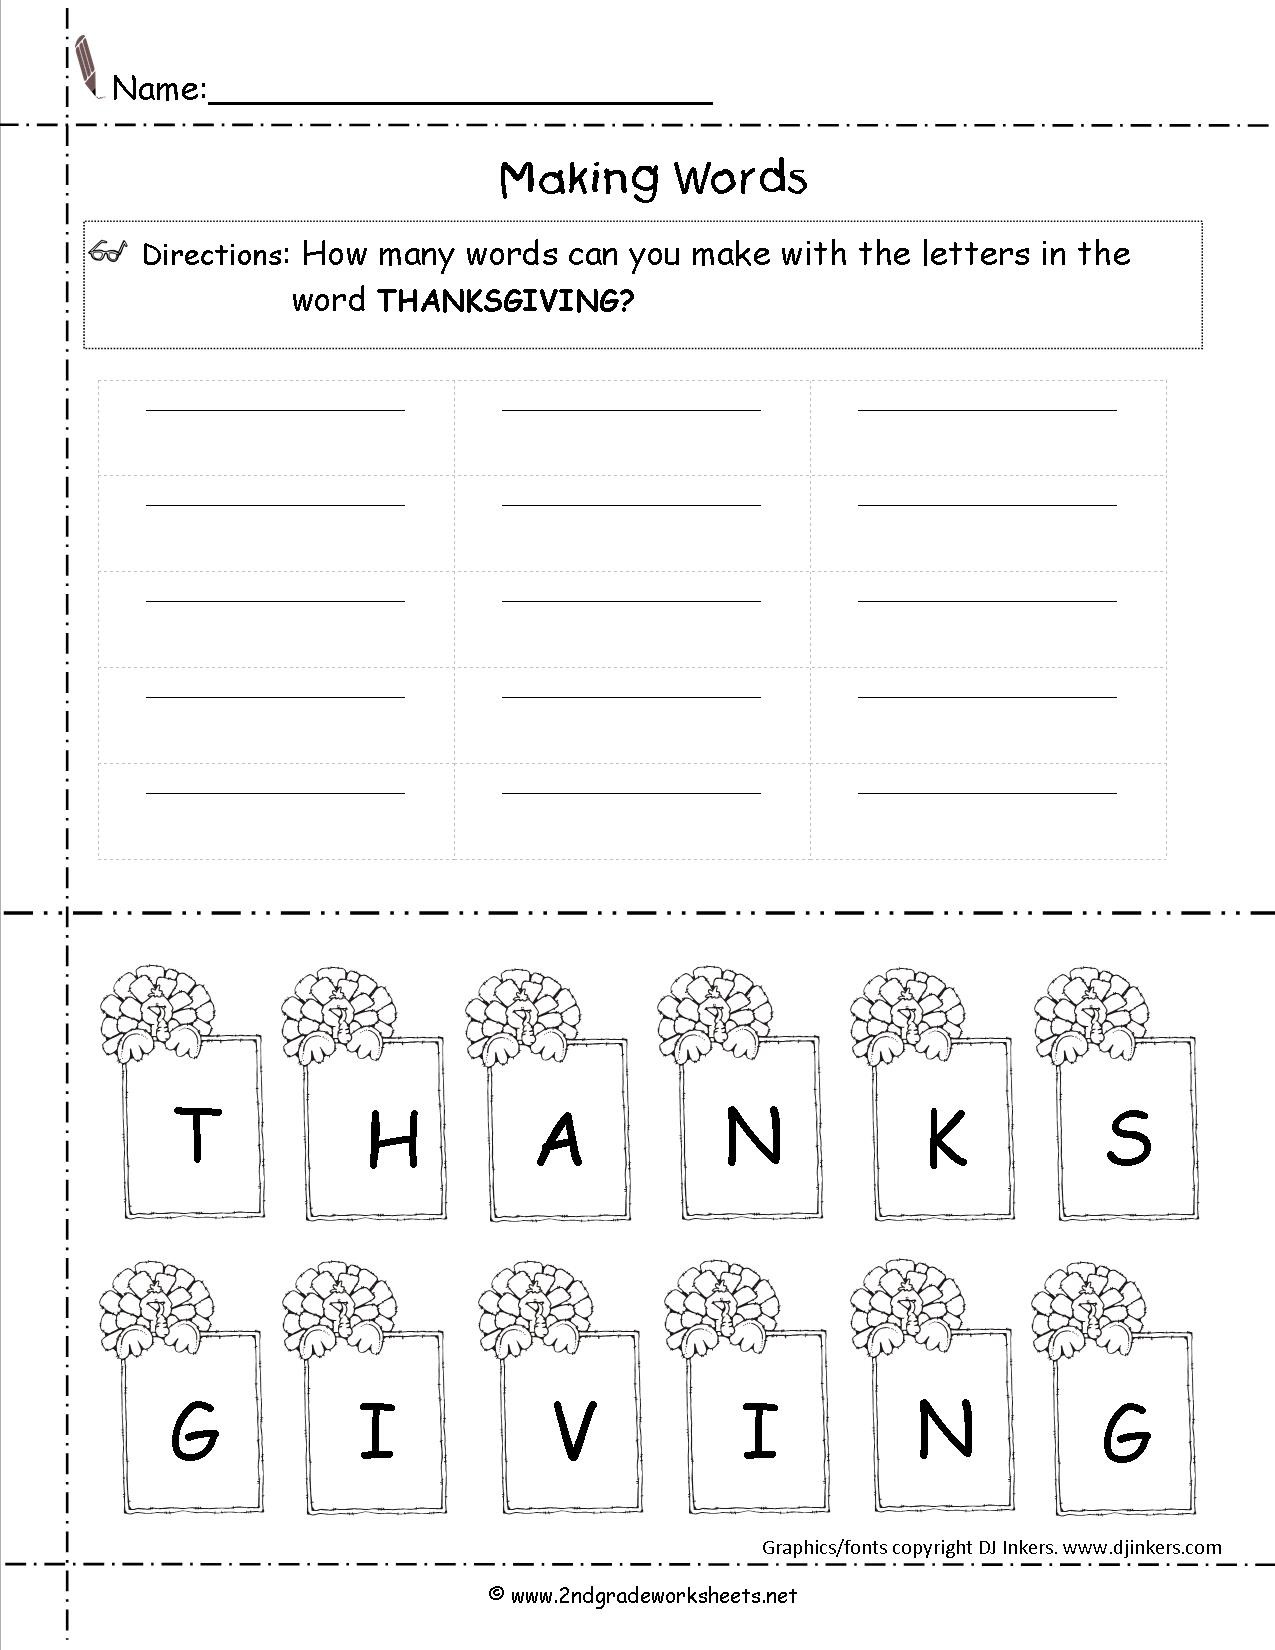 Ck Worksheets for 2nd Grade Thanksgiving Printouts and Worksheets Free 2nd Grade Math